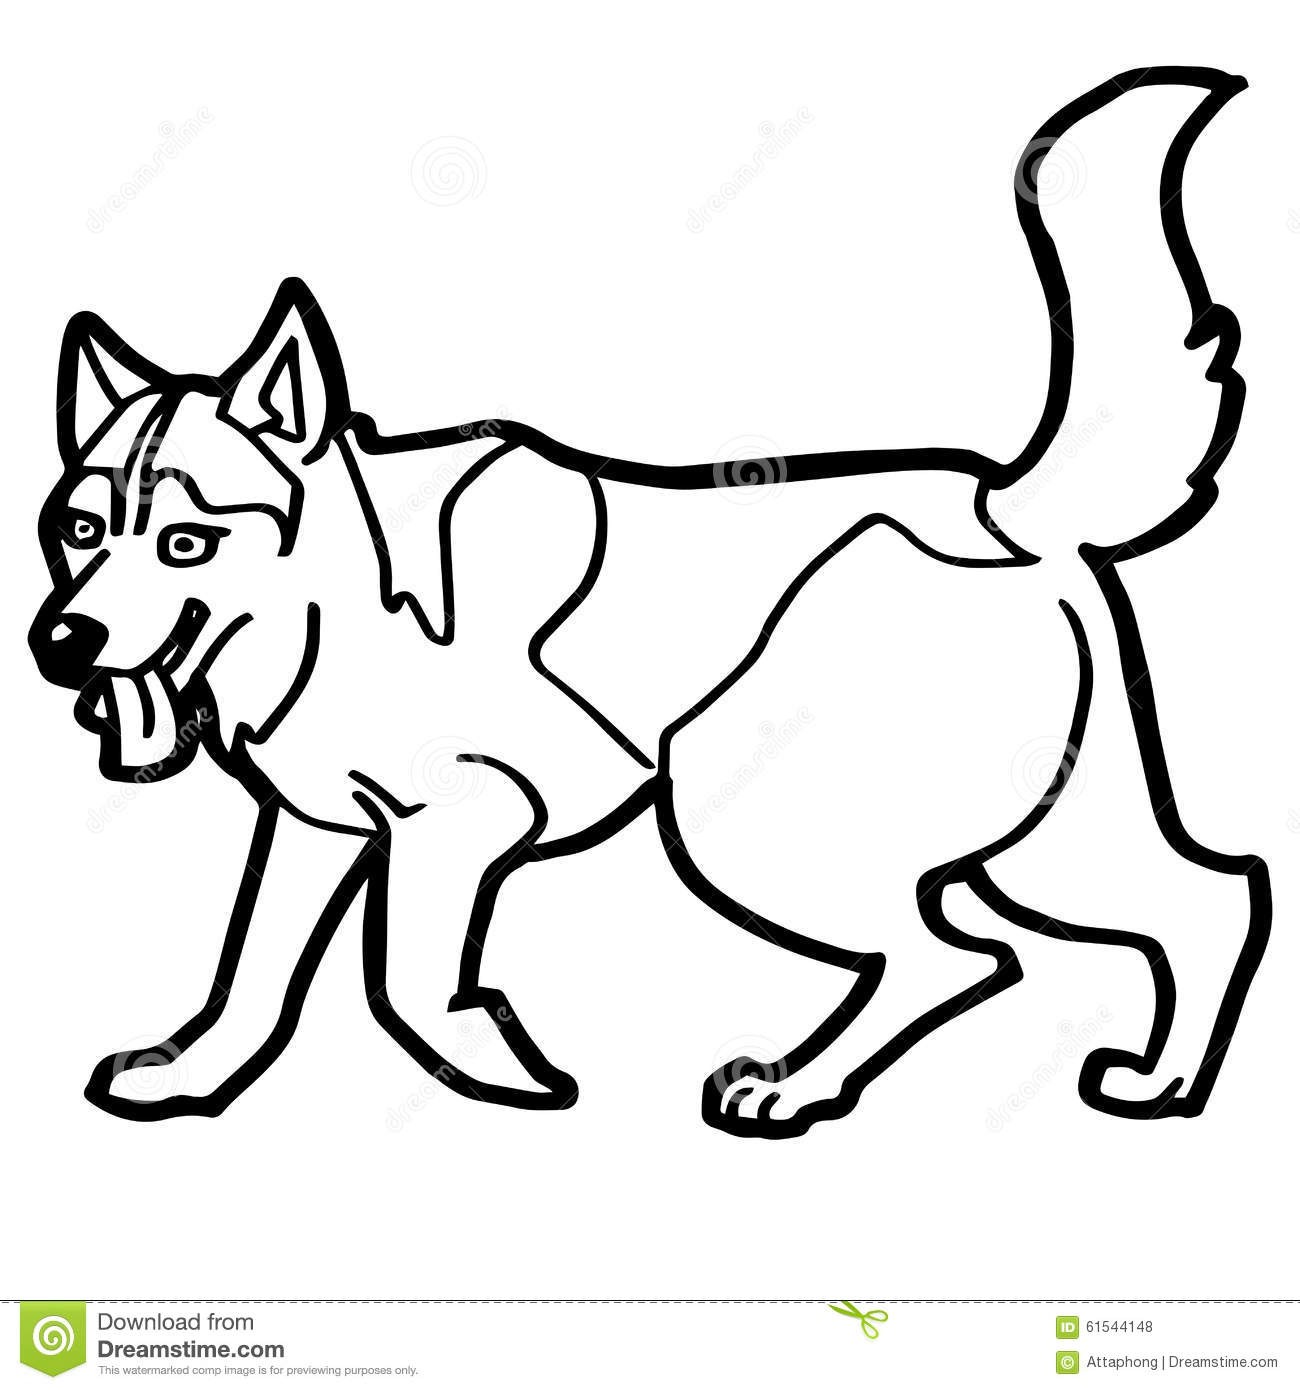 Cartoon Illustration Of Funny Dog For Coloring Book Stock Vector ...